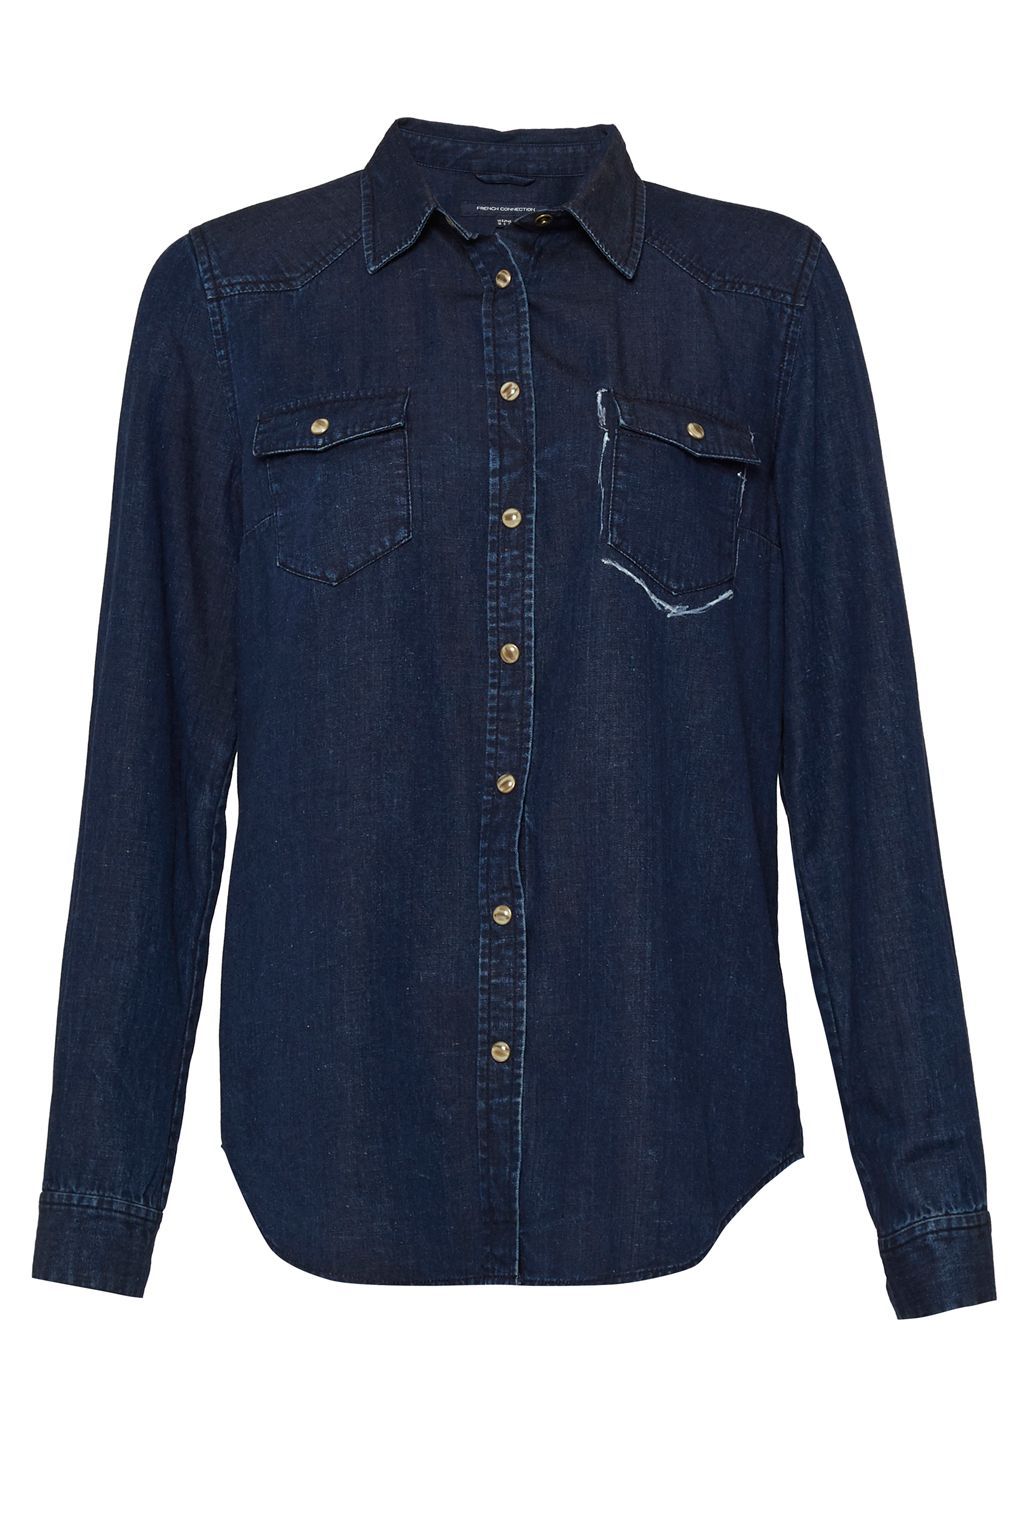 French Connection Leila Denim Classic Western Shirt, Indigo